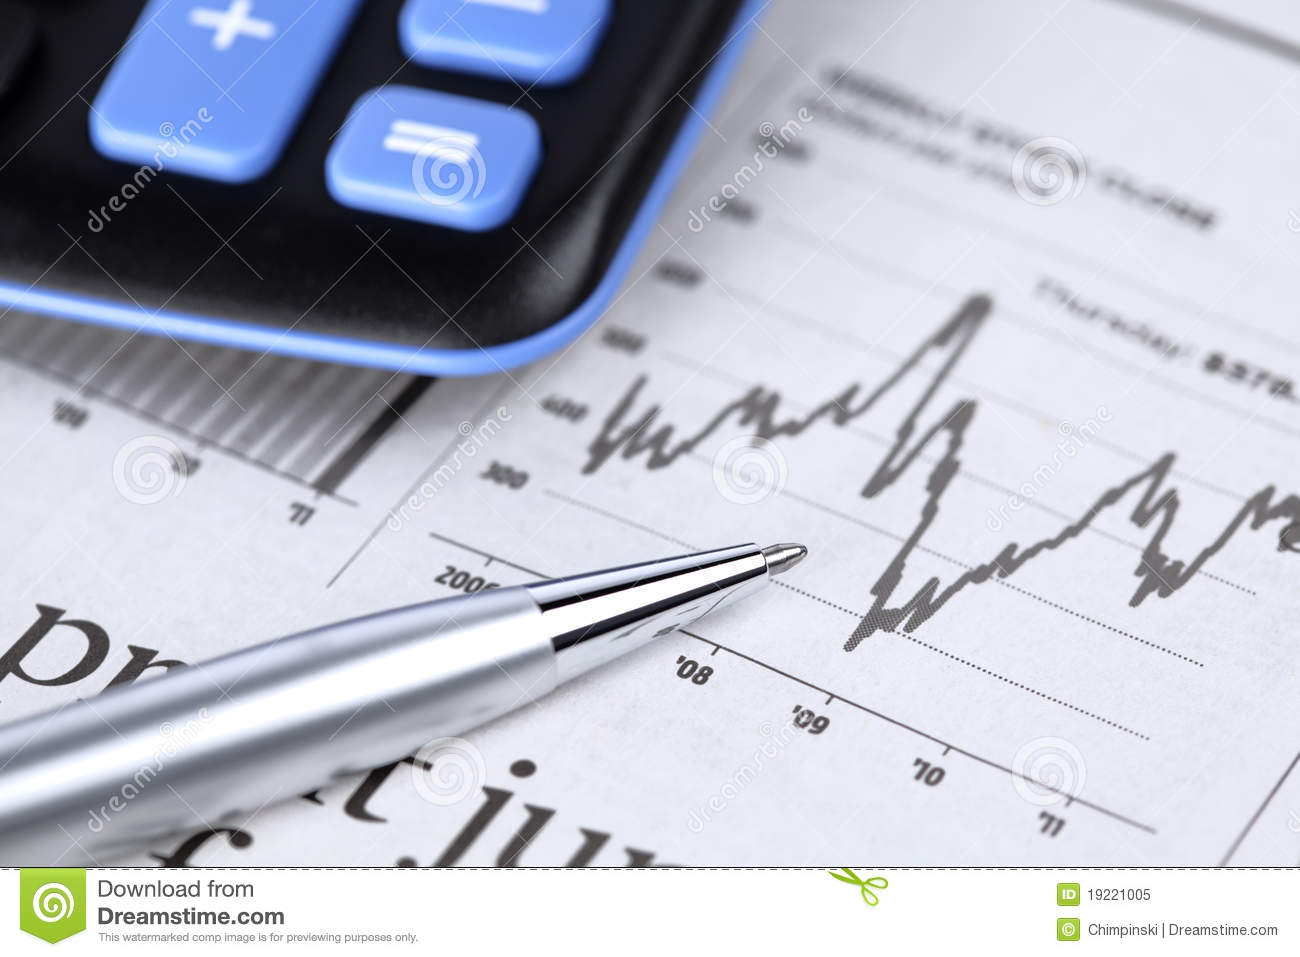 business-finance-19221005.jpg